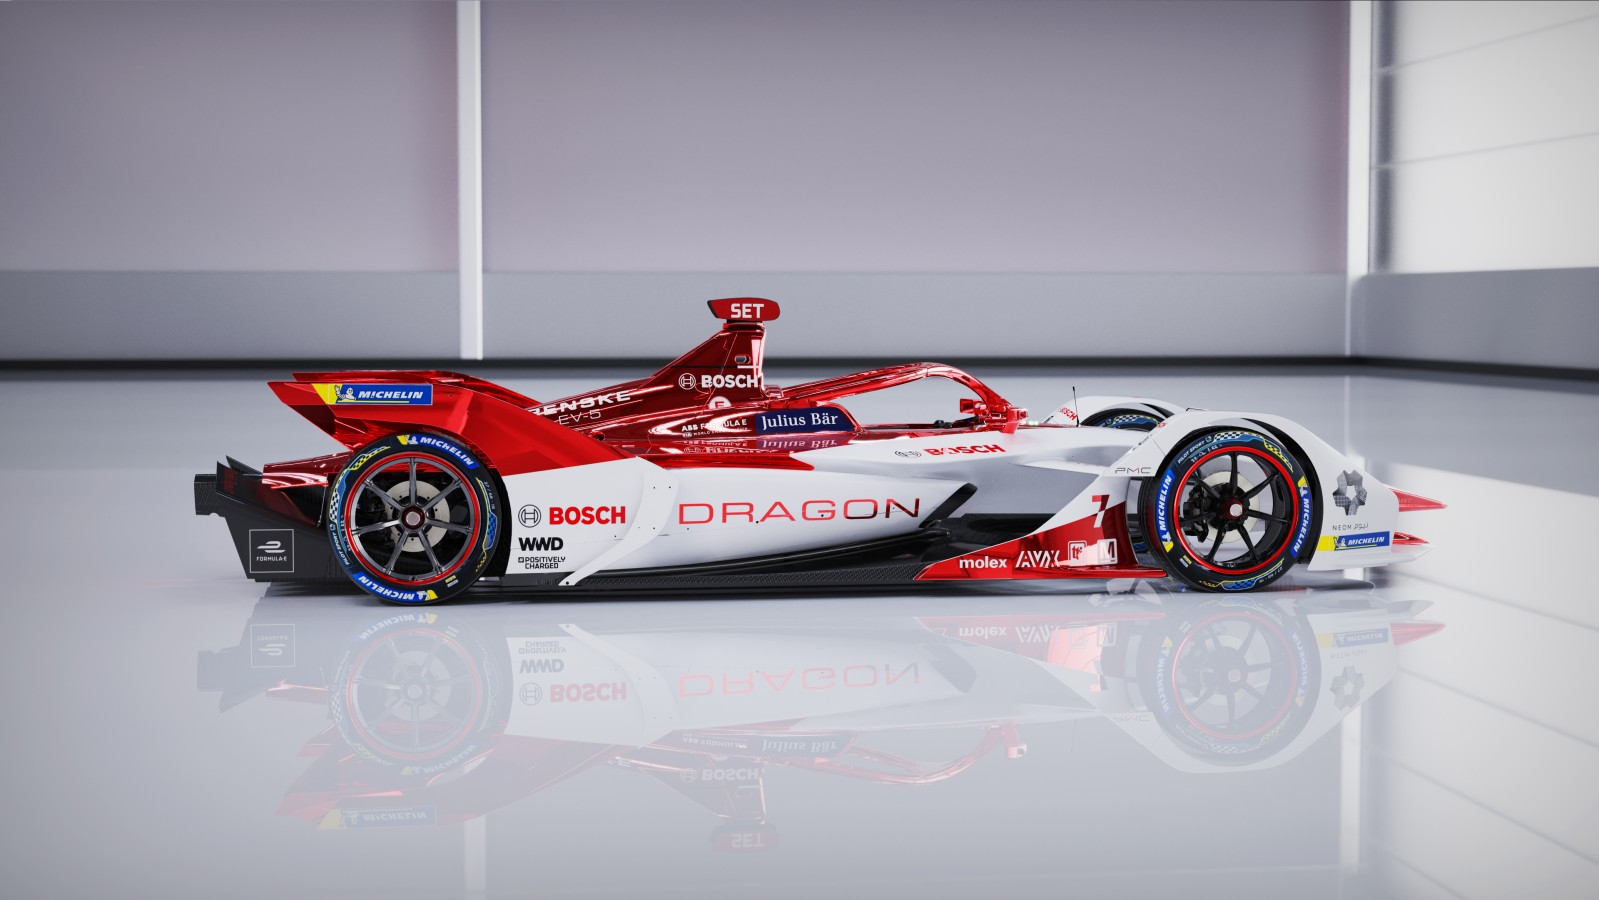 Electrifying motorsports: Bosch and DRAGON / PENSKE AUTOSPORT begin a long-term partnership in Formula E